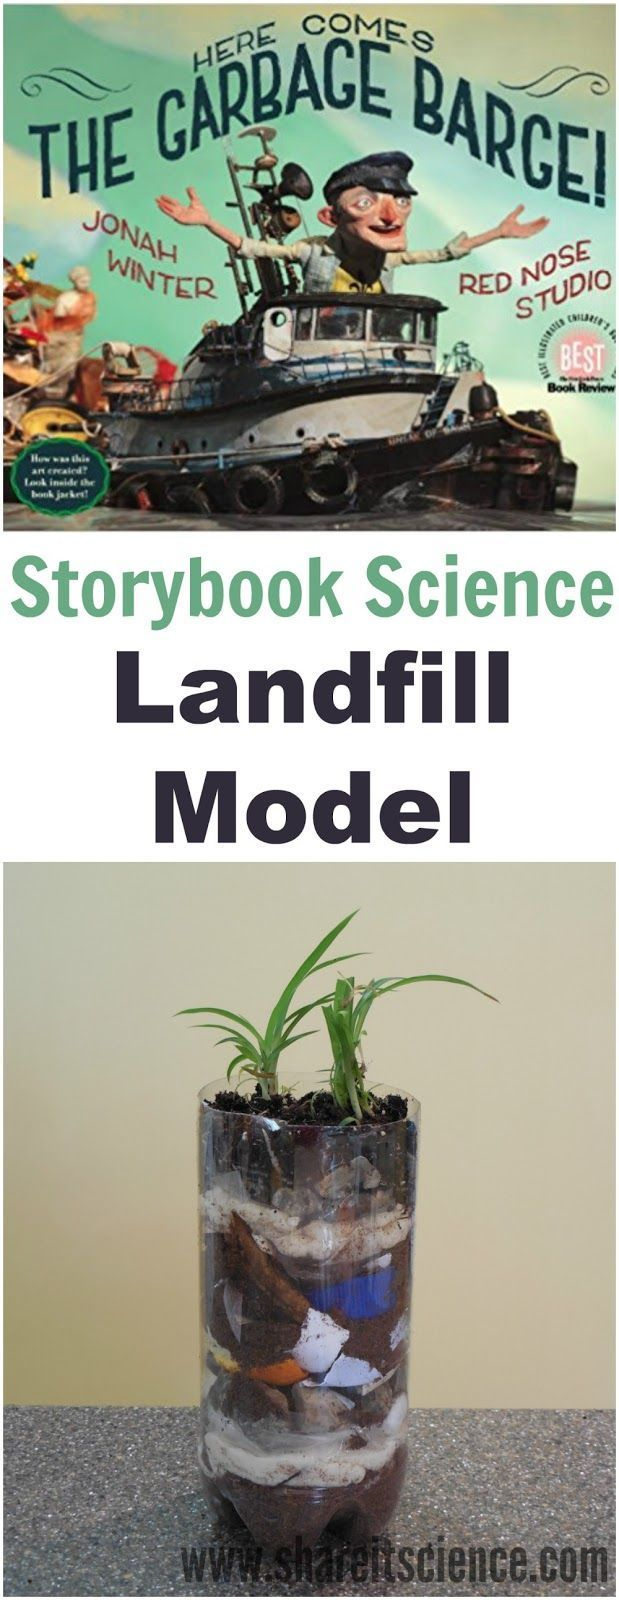 """Here Comes the Garbage Barge"" inspired Landfill Model. Where does our trash go? Use this children's picture book as a launching point for why we should conserve and make less waste! Build a landfill model to understand the process. Awesome for Earth Day or environmental club."